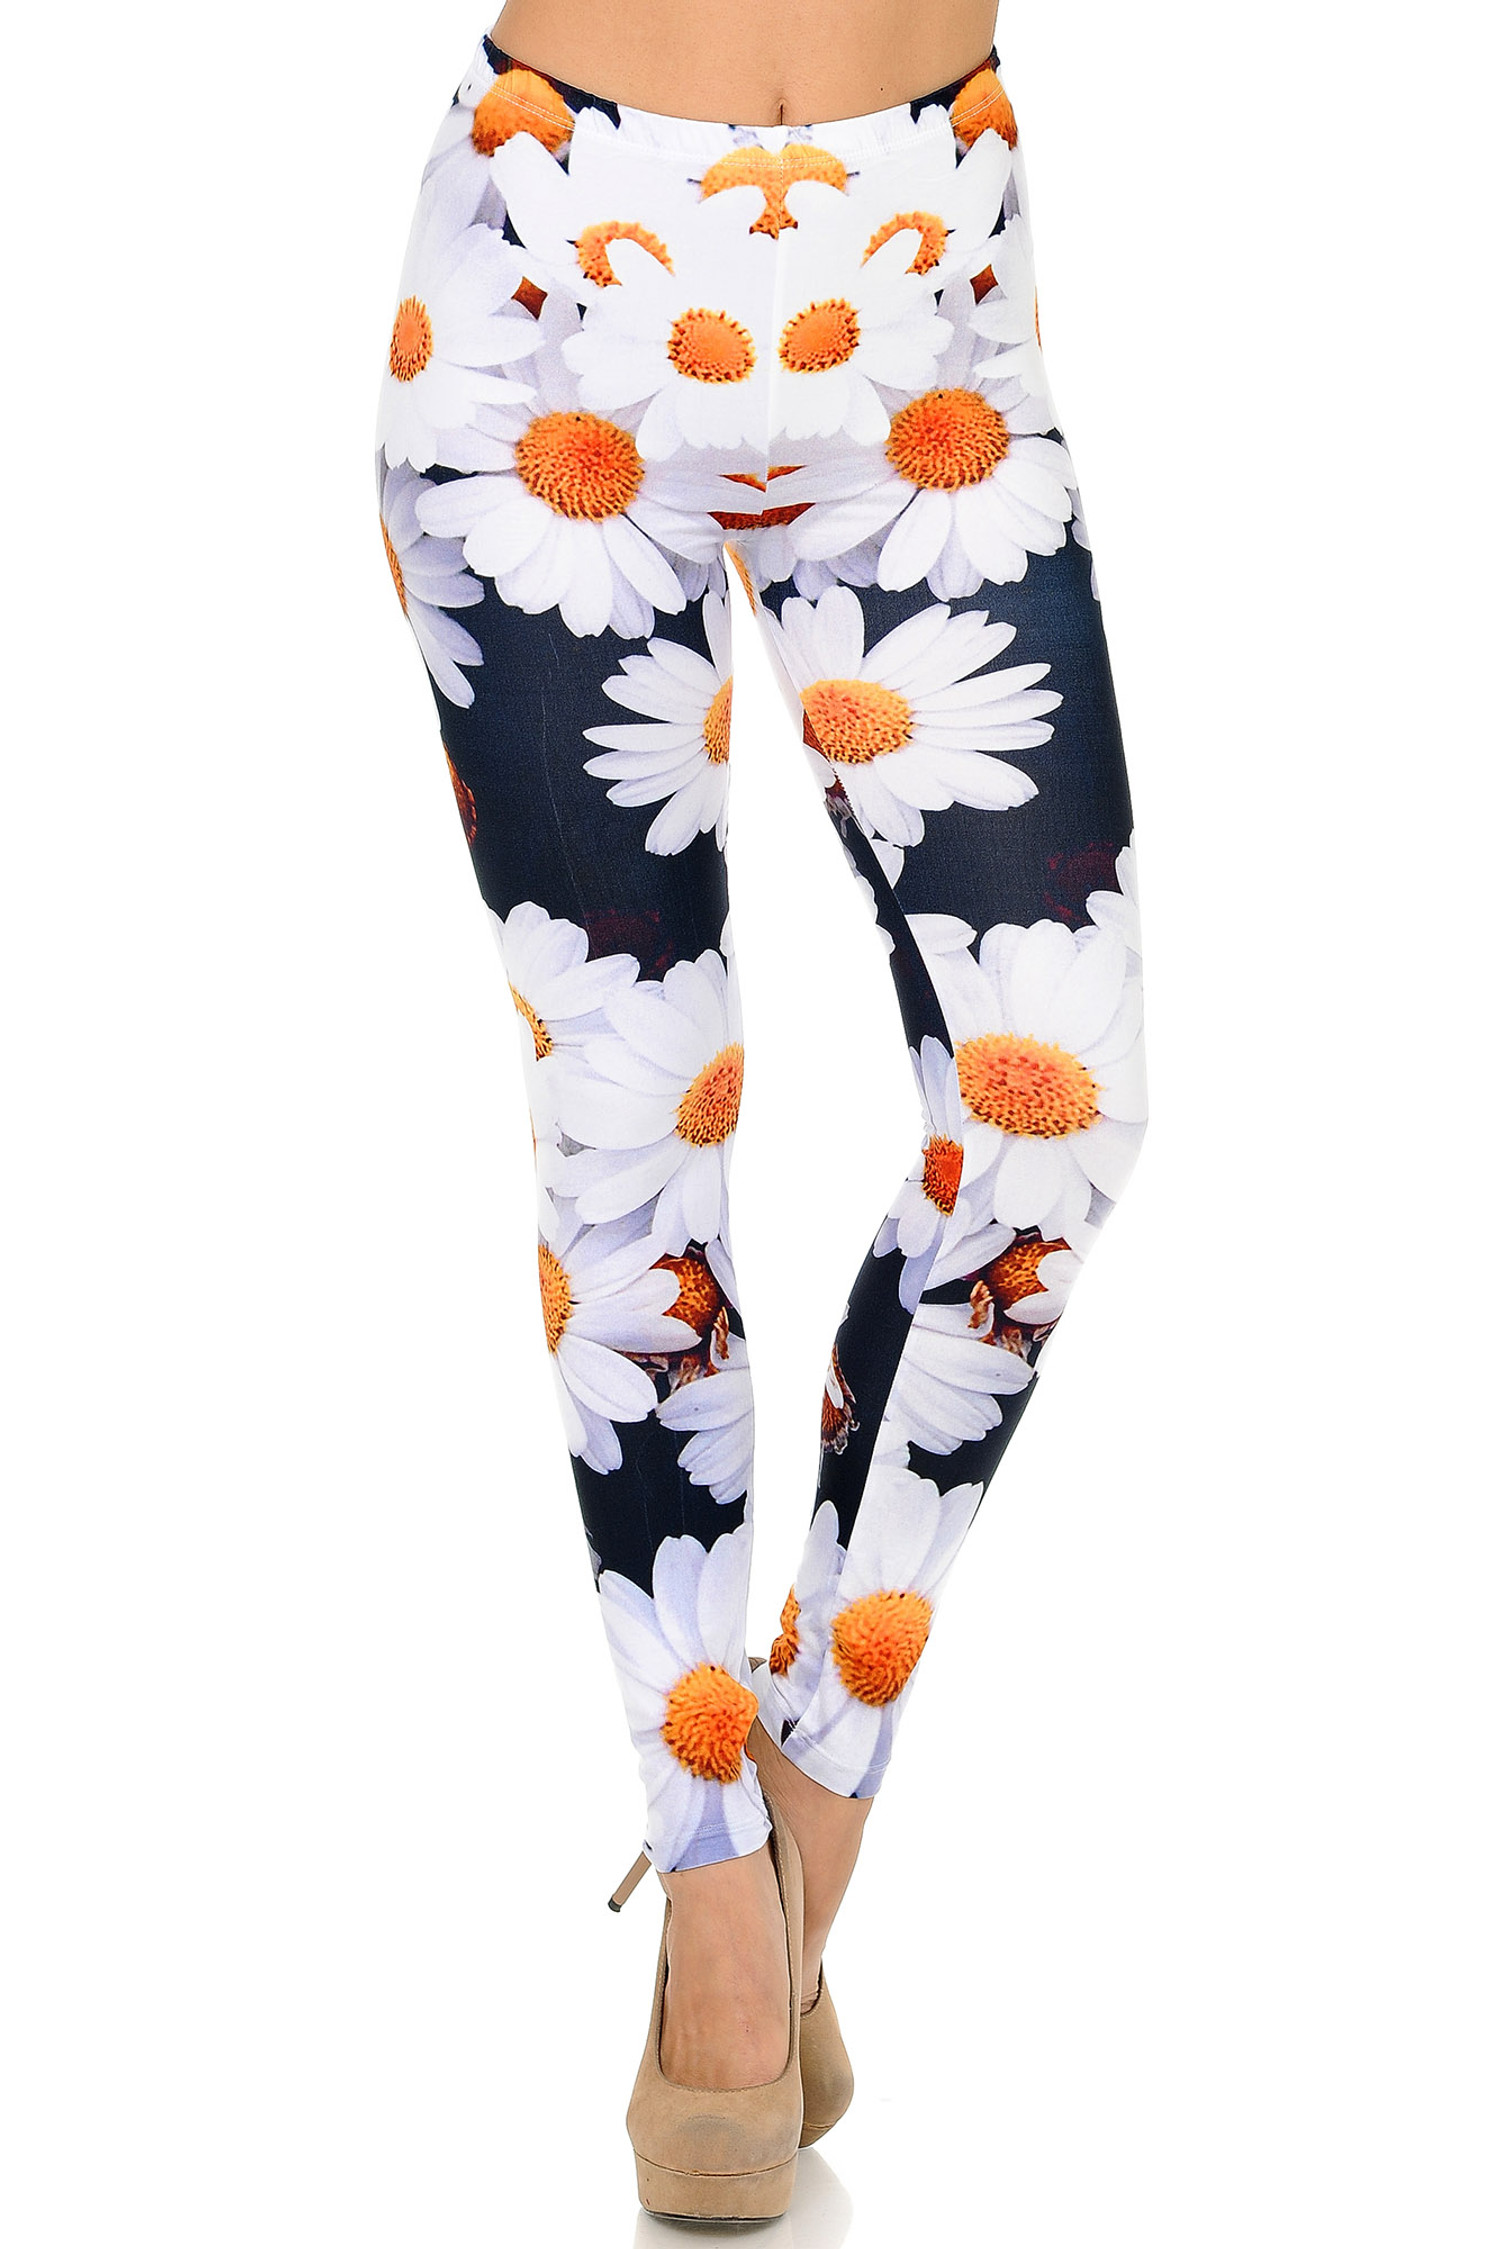 Front side image of Creamy Soft Daisy Plus Size Leggings - USA Fashion™